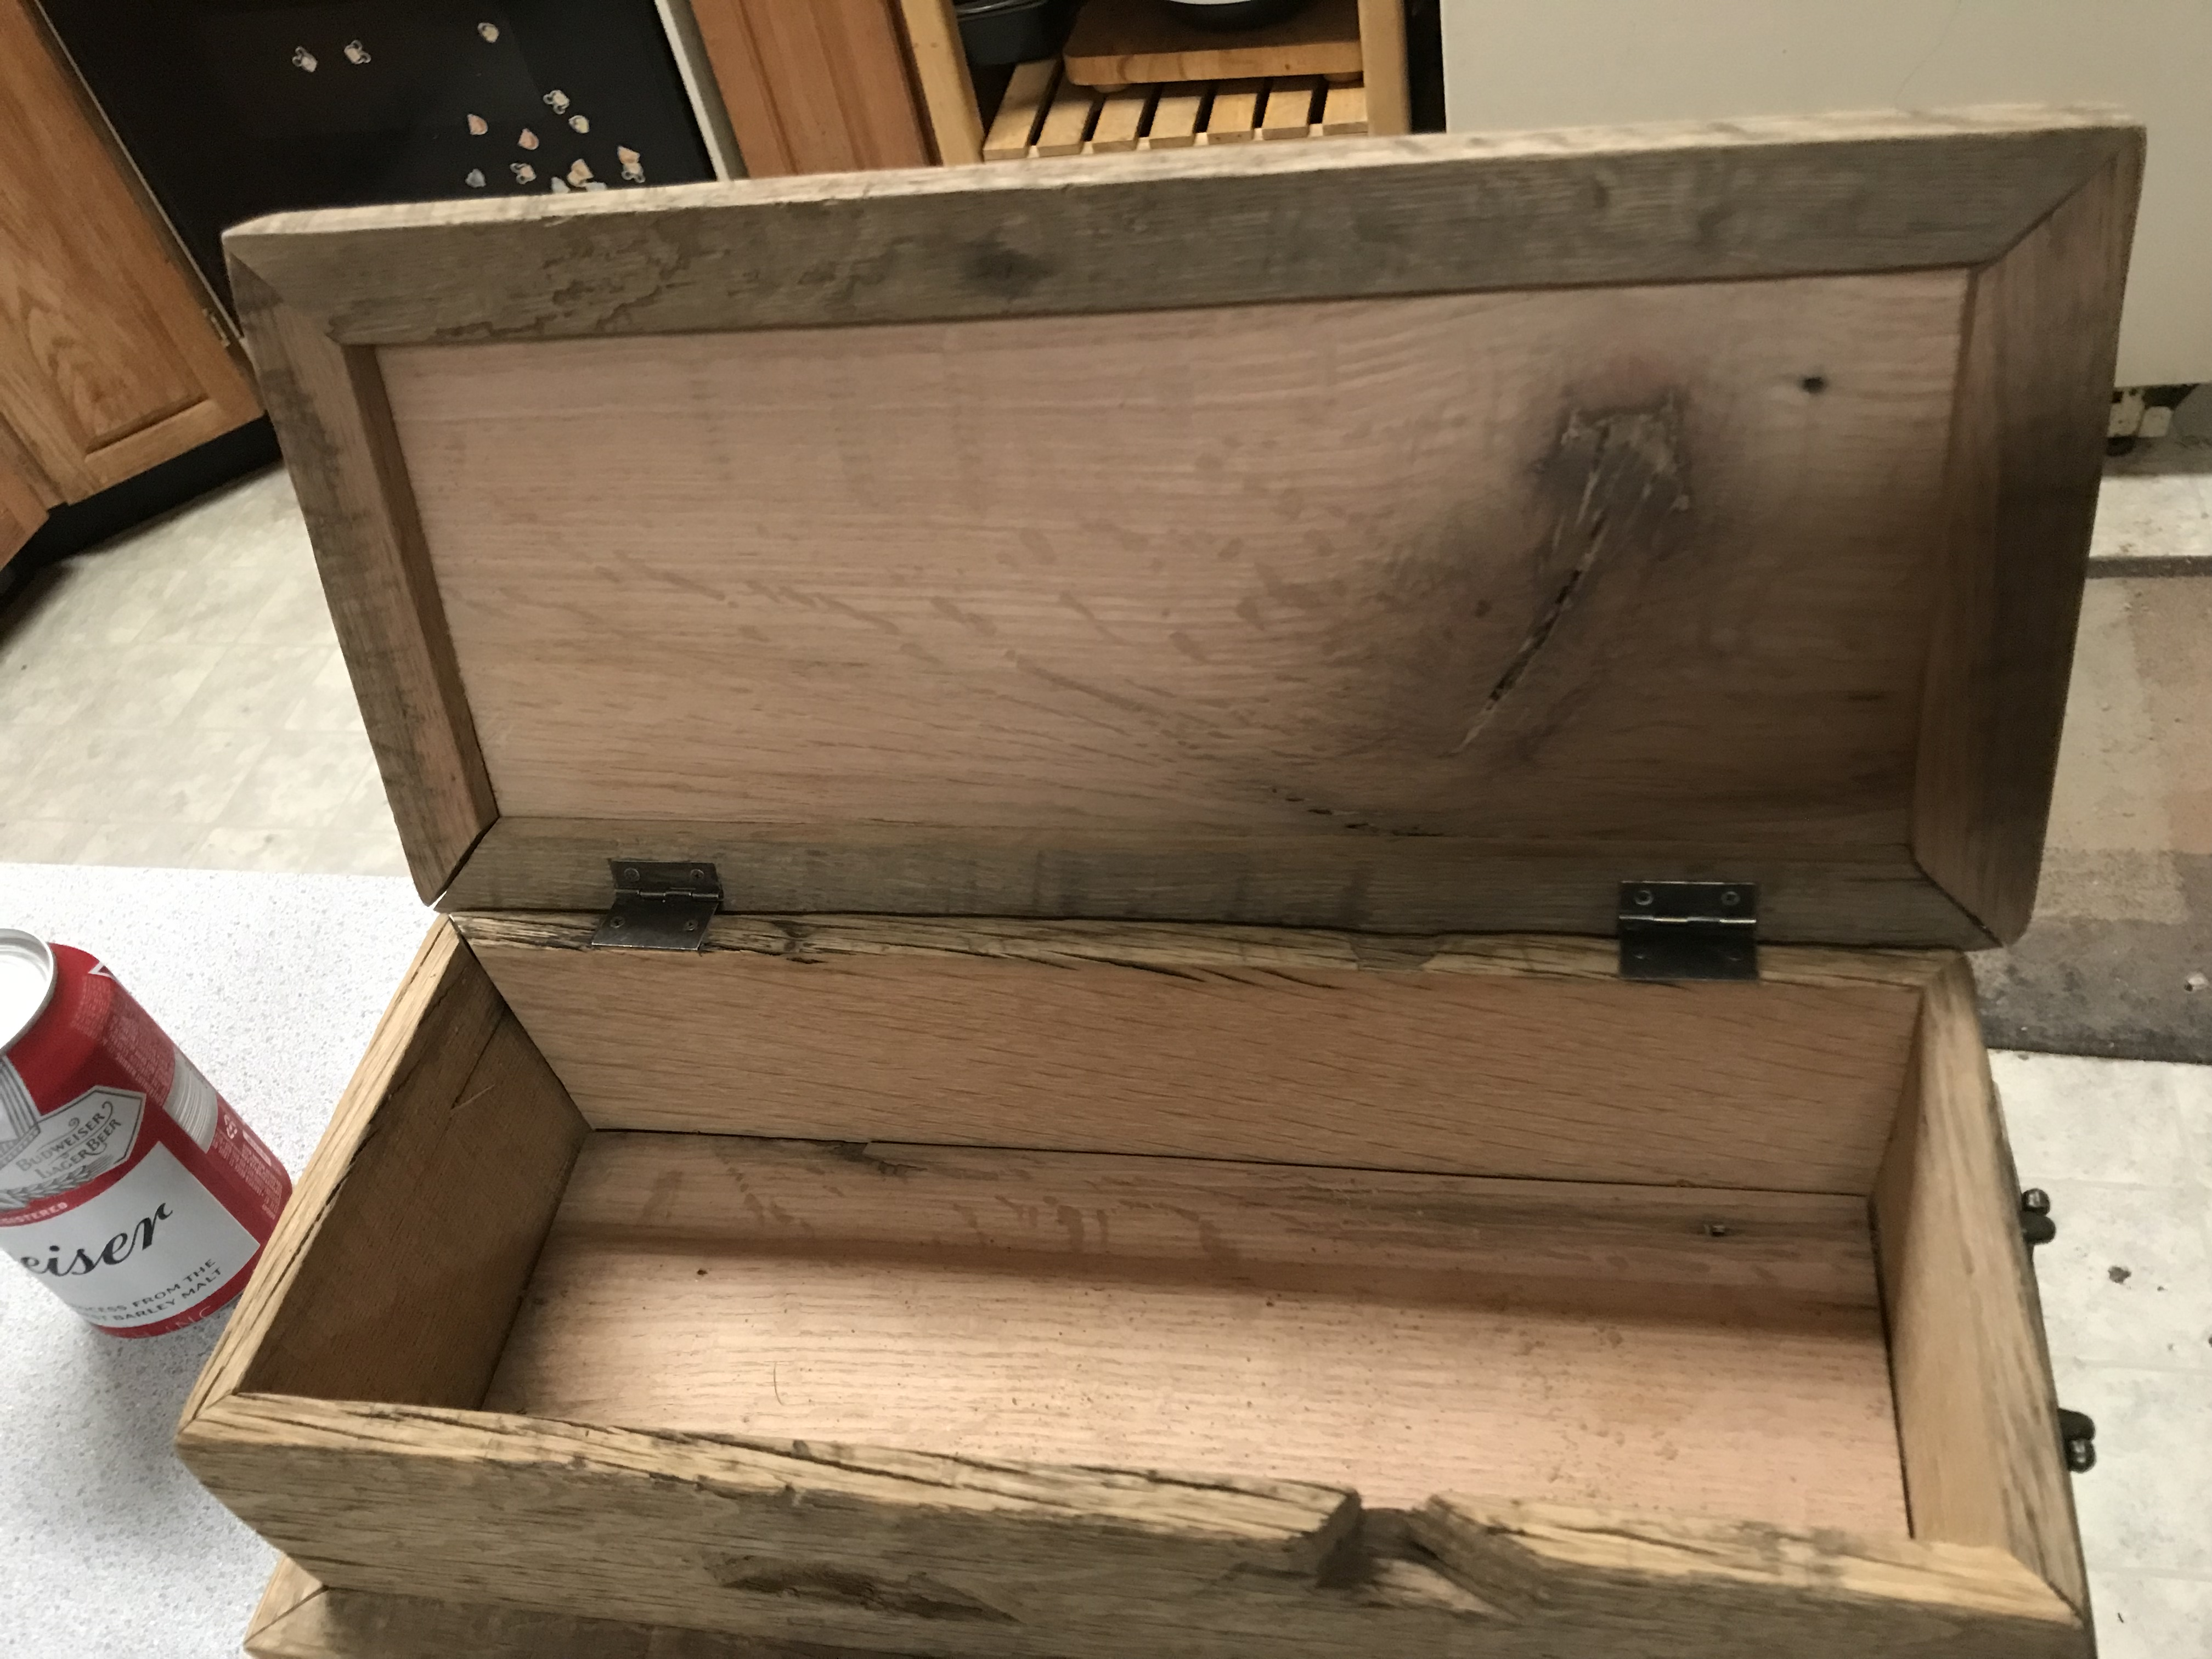 The inside of an oak wood box with the top opened on hinges